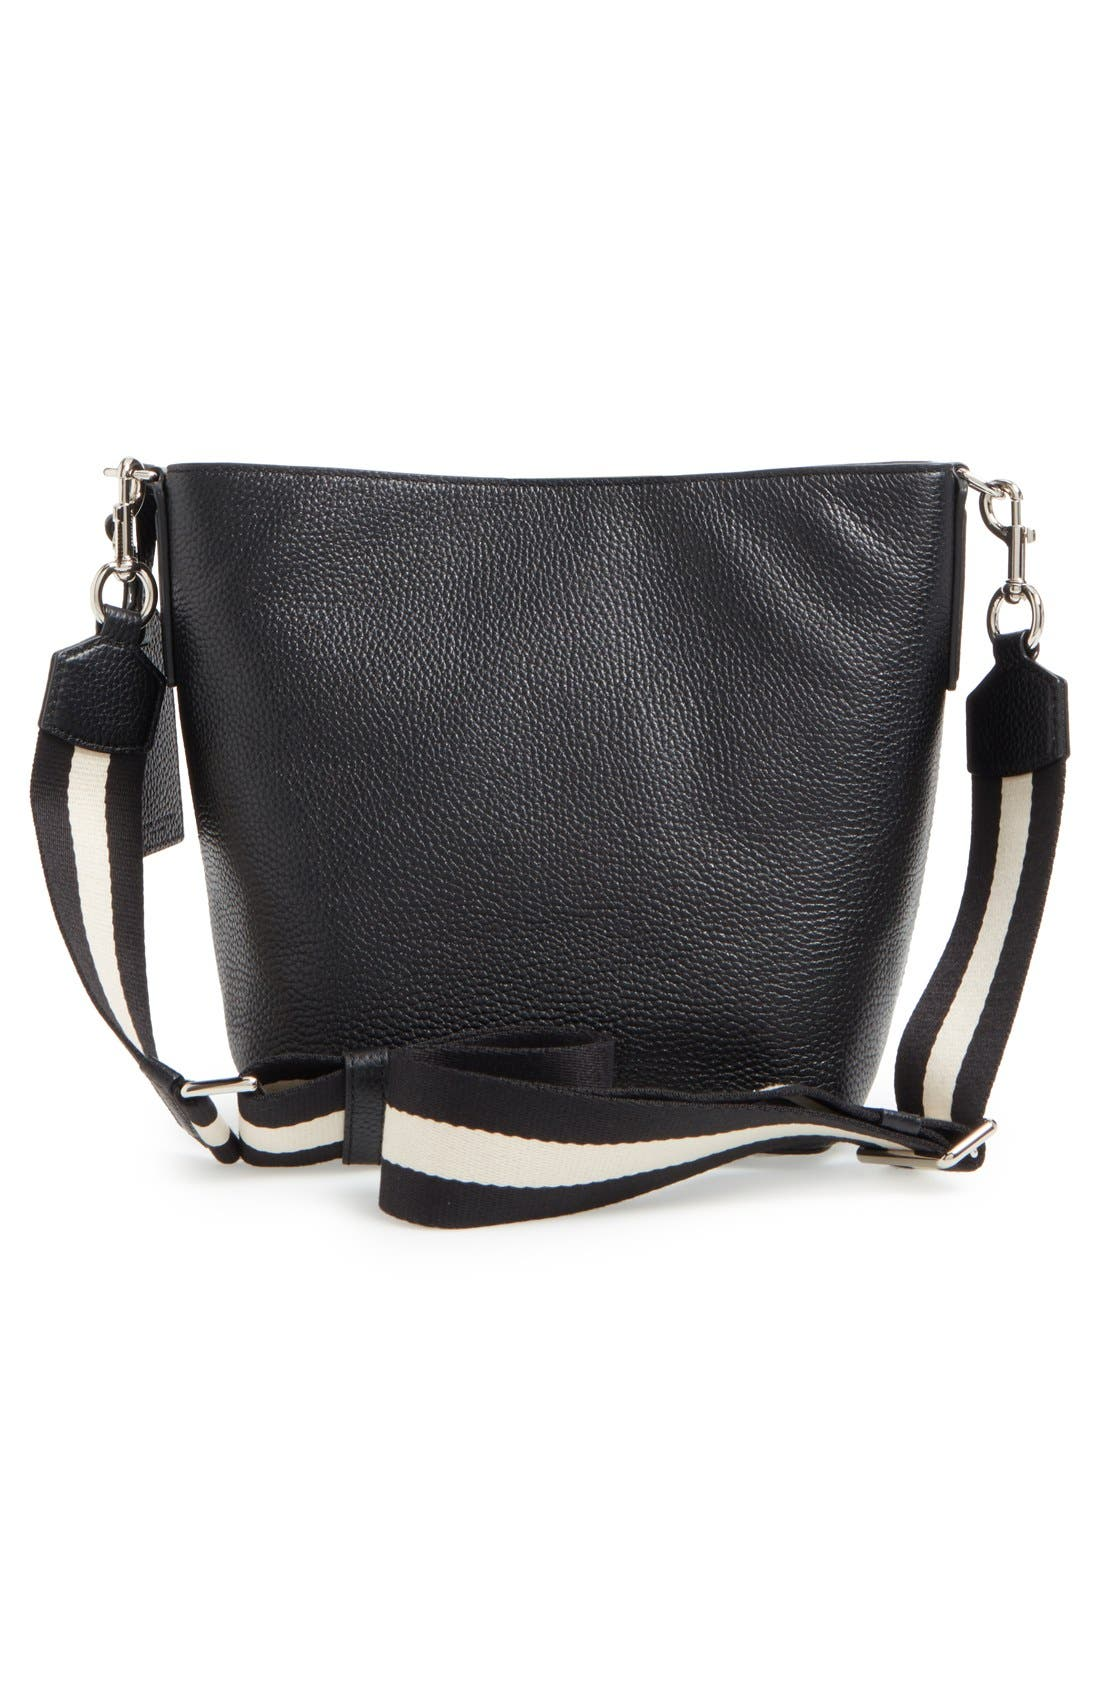 MARC JACOBS, 'Gotham' Leather Bucket Bag, Alternate thumbnail 4, color, 001